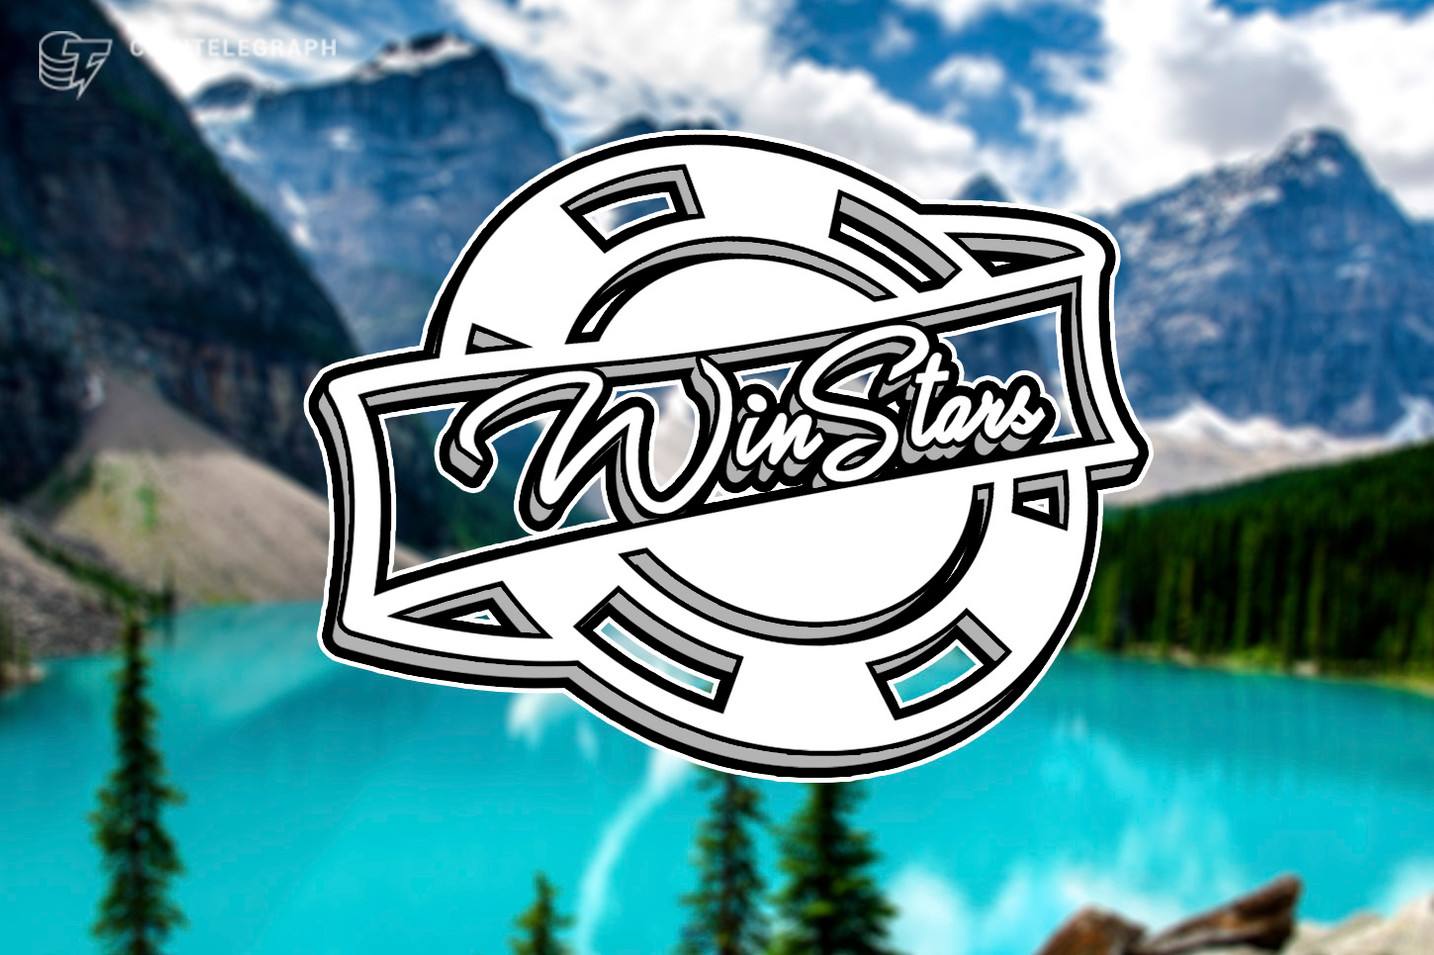 Winstars - a New Blockchain Gambling Platform